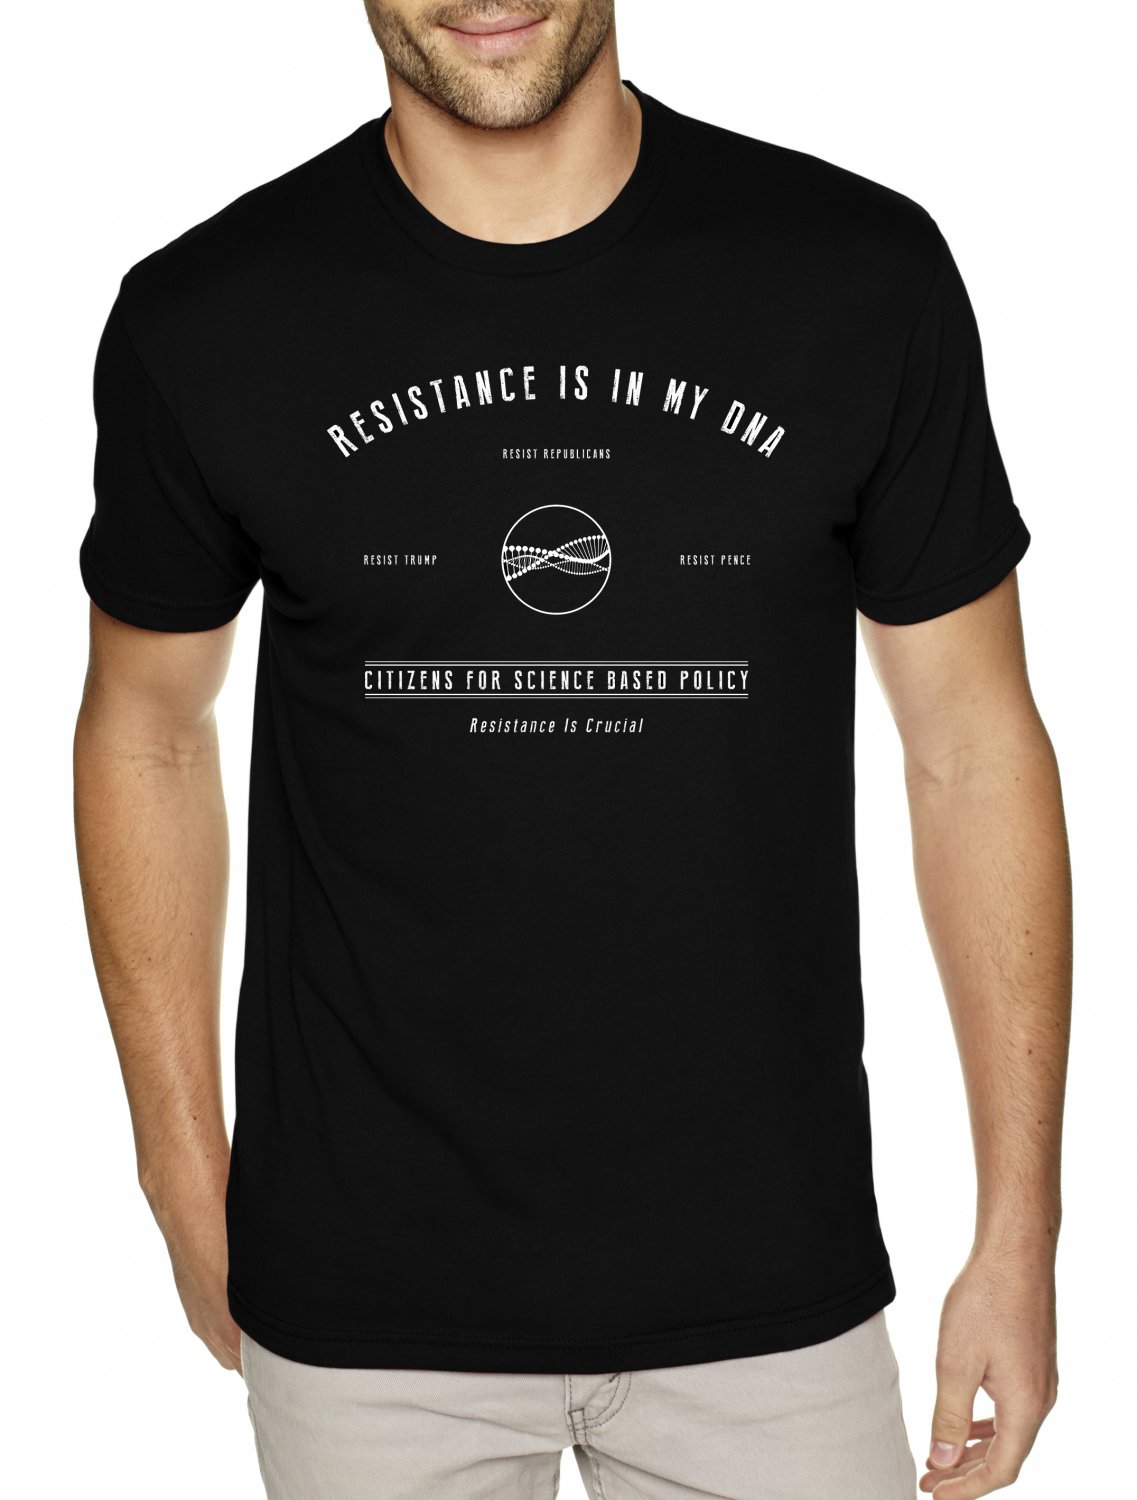 RESISTANCE IS IN MY DNA - Citizens For Science Based Policy - Premium Sueded Shirt SIZE 2XL